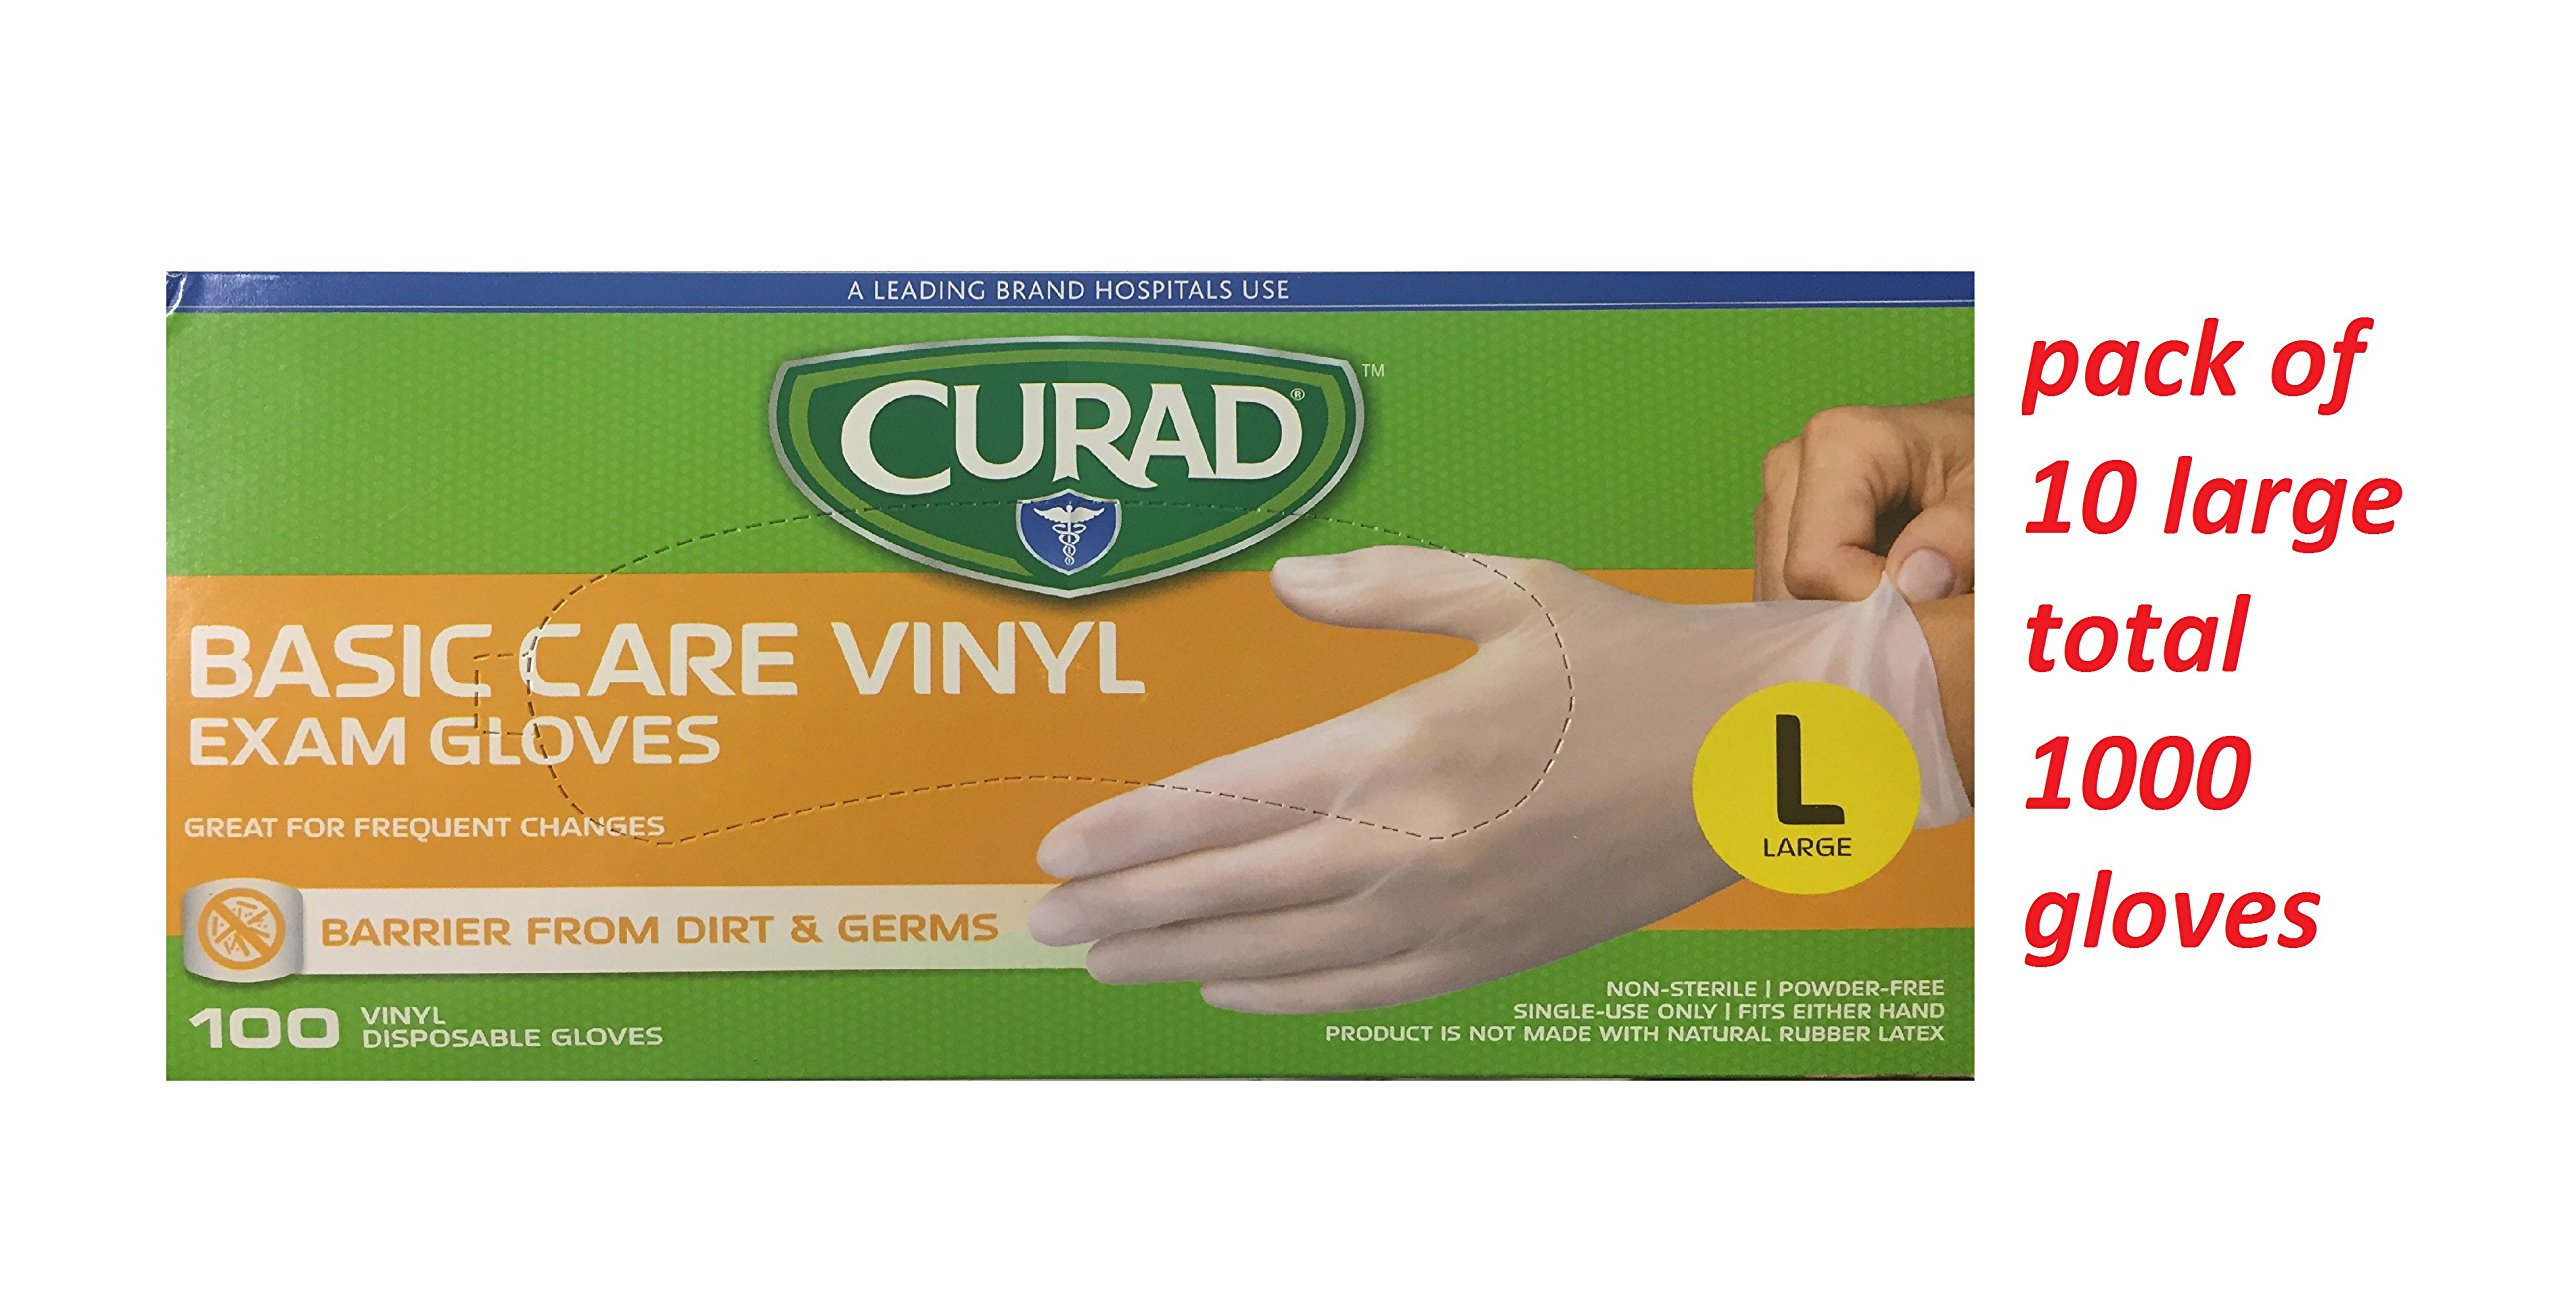 Curad Basic Care Vinyl Exam Gloves, Large, 100 Count (Pack of 10) (Total 1000 Large Gloves)